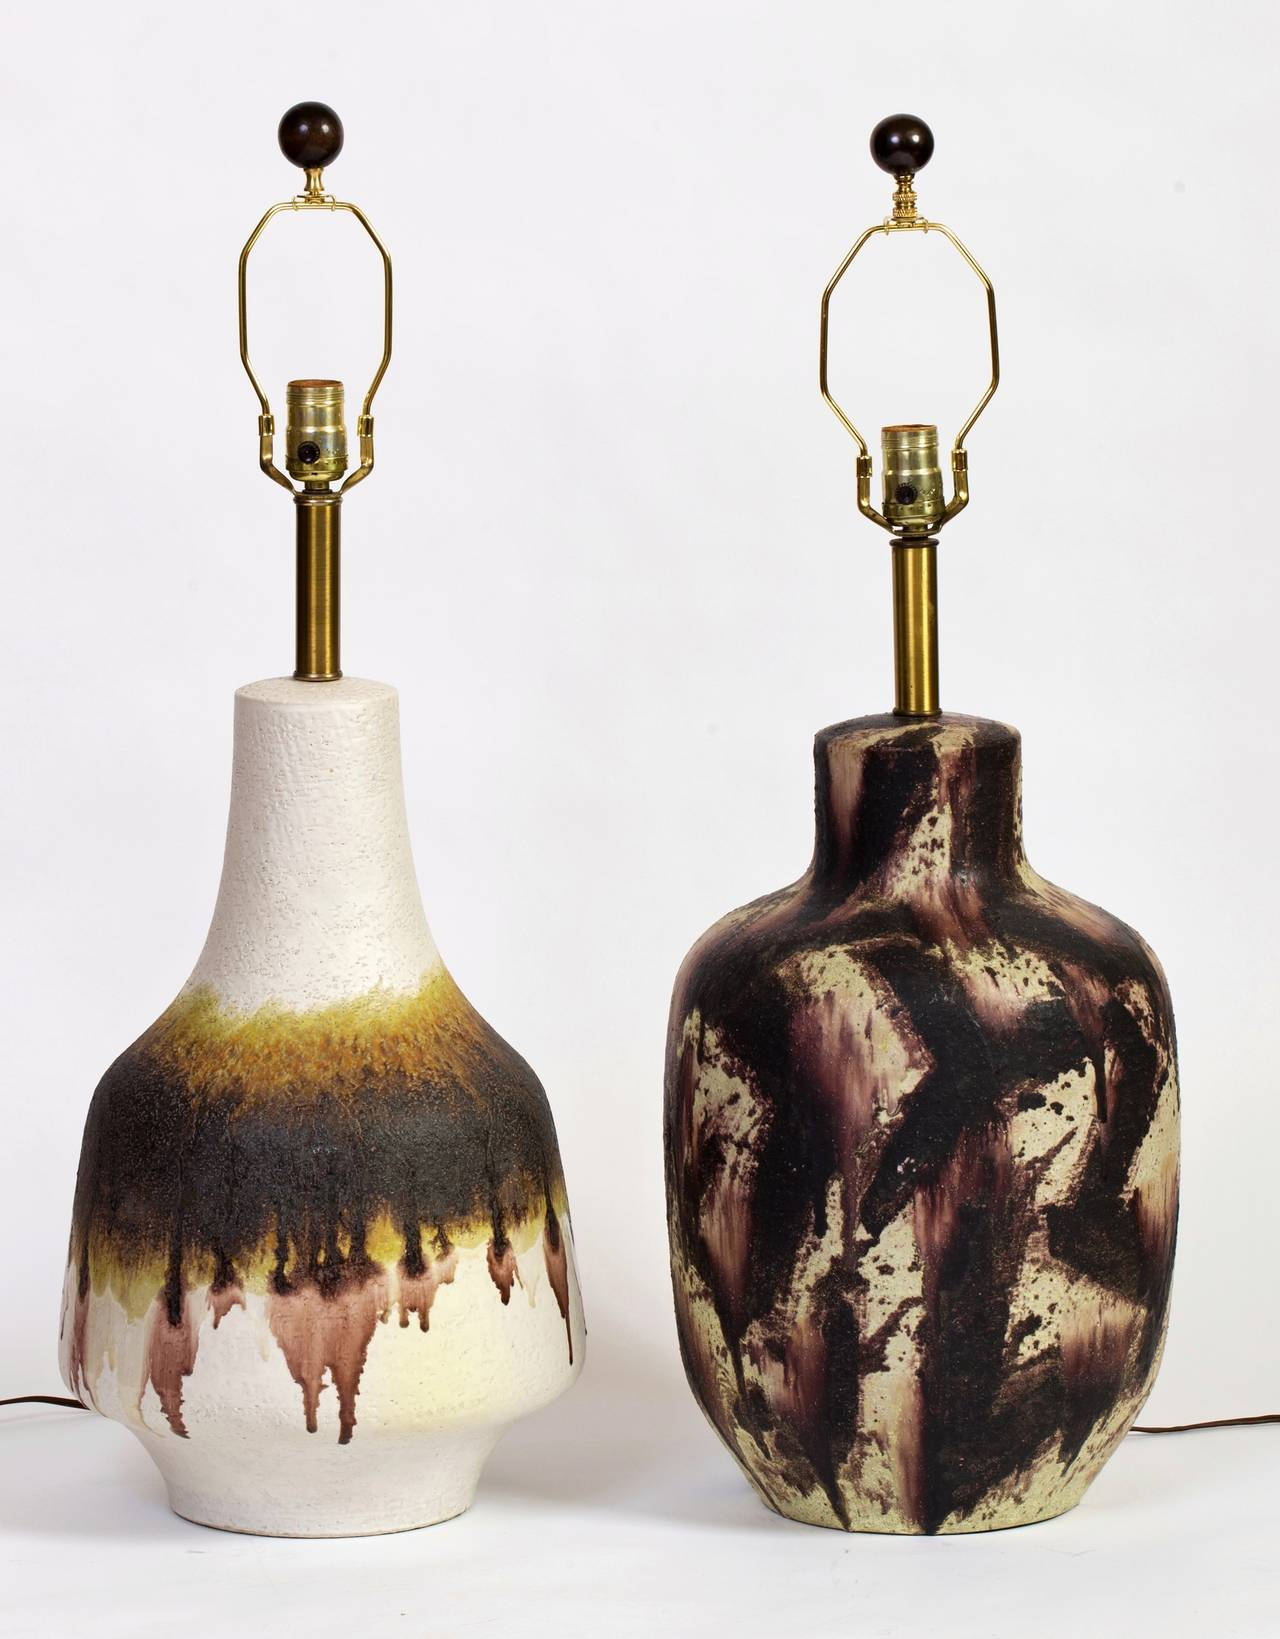 Unique pair of mismatched Fantoni ceramic lamps for Raymor. Beautiful scale and design from the layered drips to the abstract pattern. The off white lamp is signed, Fantoni, Italy for Raymor, the other unsigned.   Each lamp is 31 inches high with